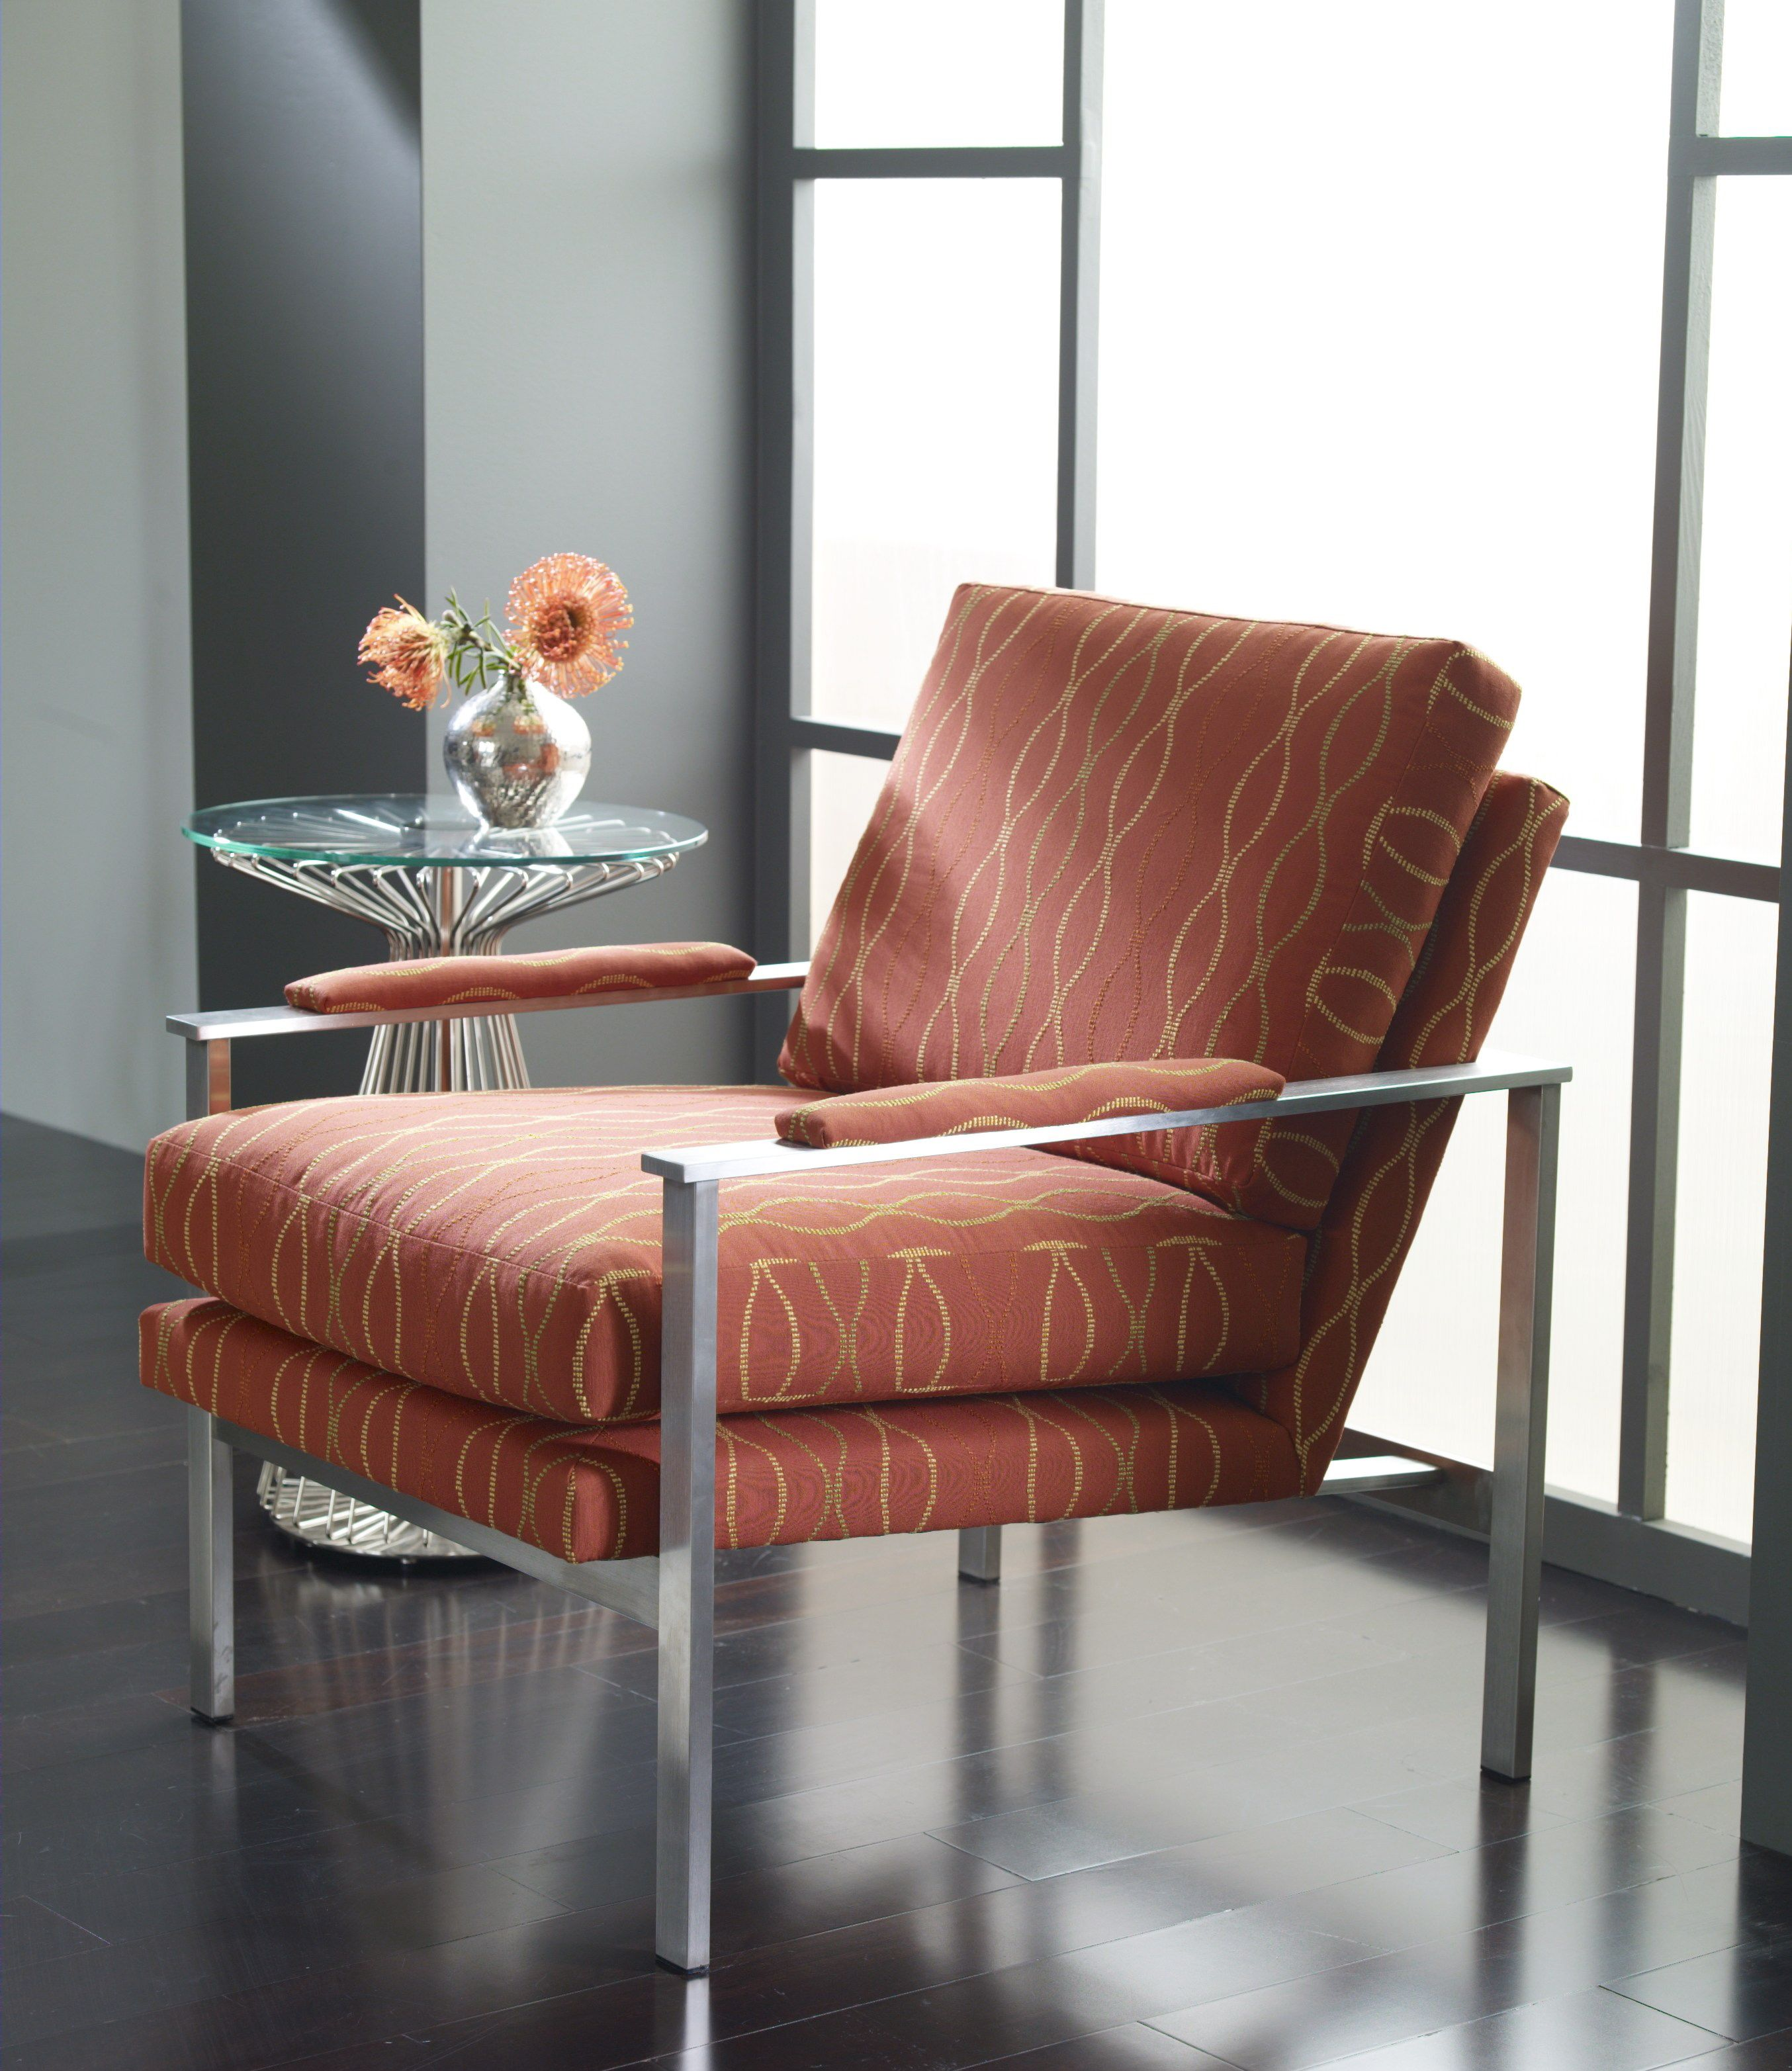 Cool Living Room Furniture: Leather Chair, Living Room